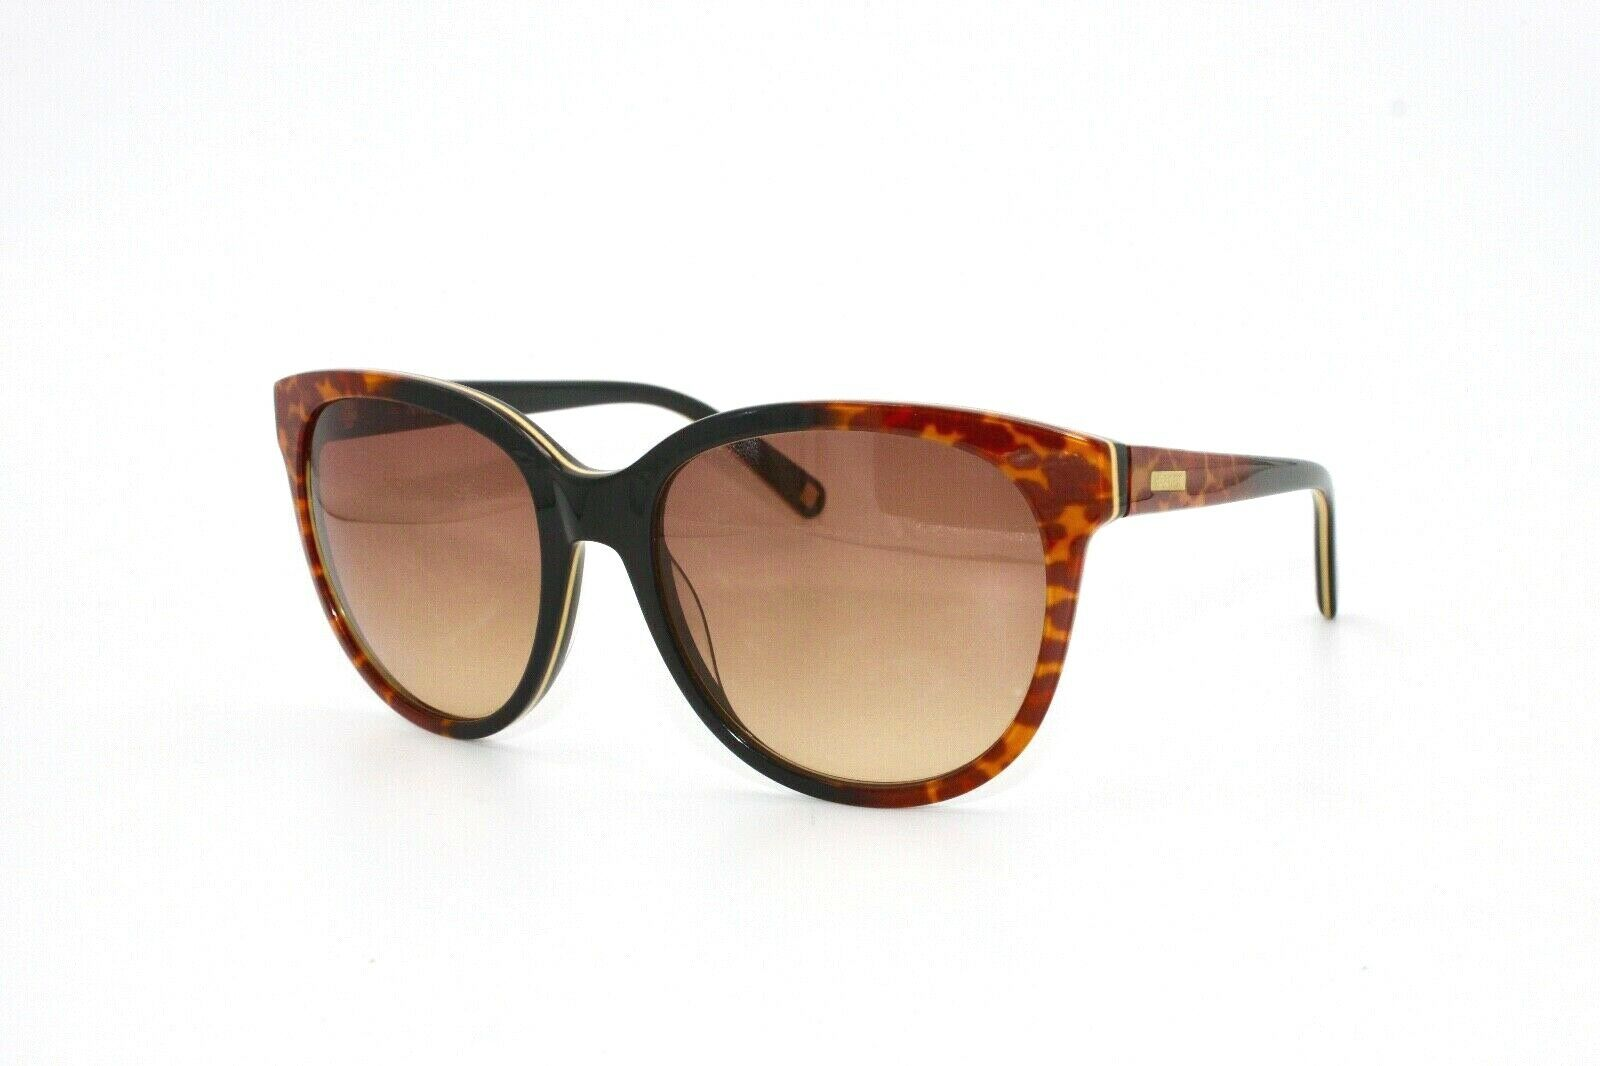 Nine West Sunglasses NW580S 213 56 18 135 - Mydesigneroptic